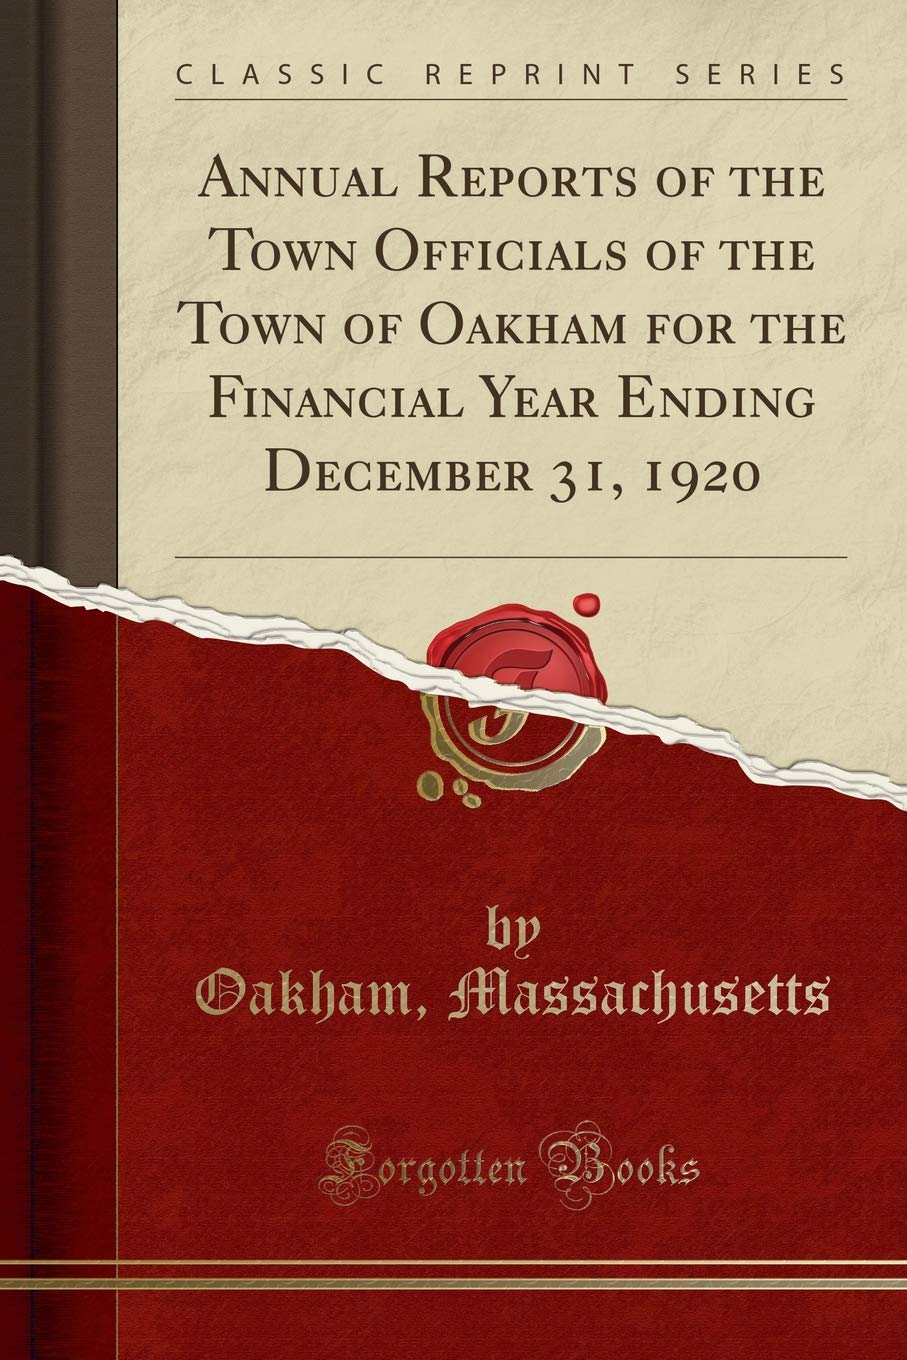 Read Online Annual Reports of the Town Officials of the Town of Oakham for the Financial Year Ending December 31, 1920 (Classic Reprint) ebook